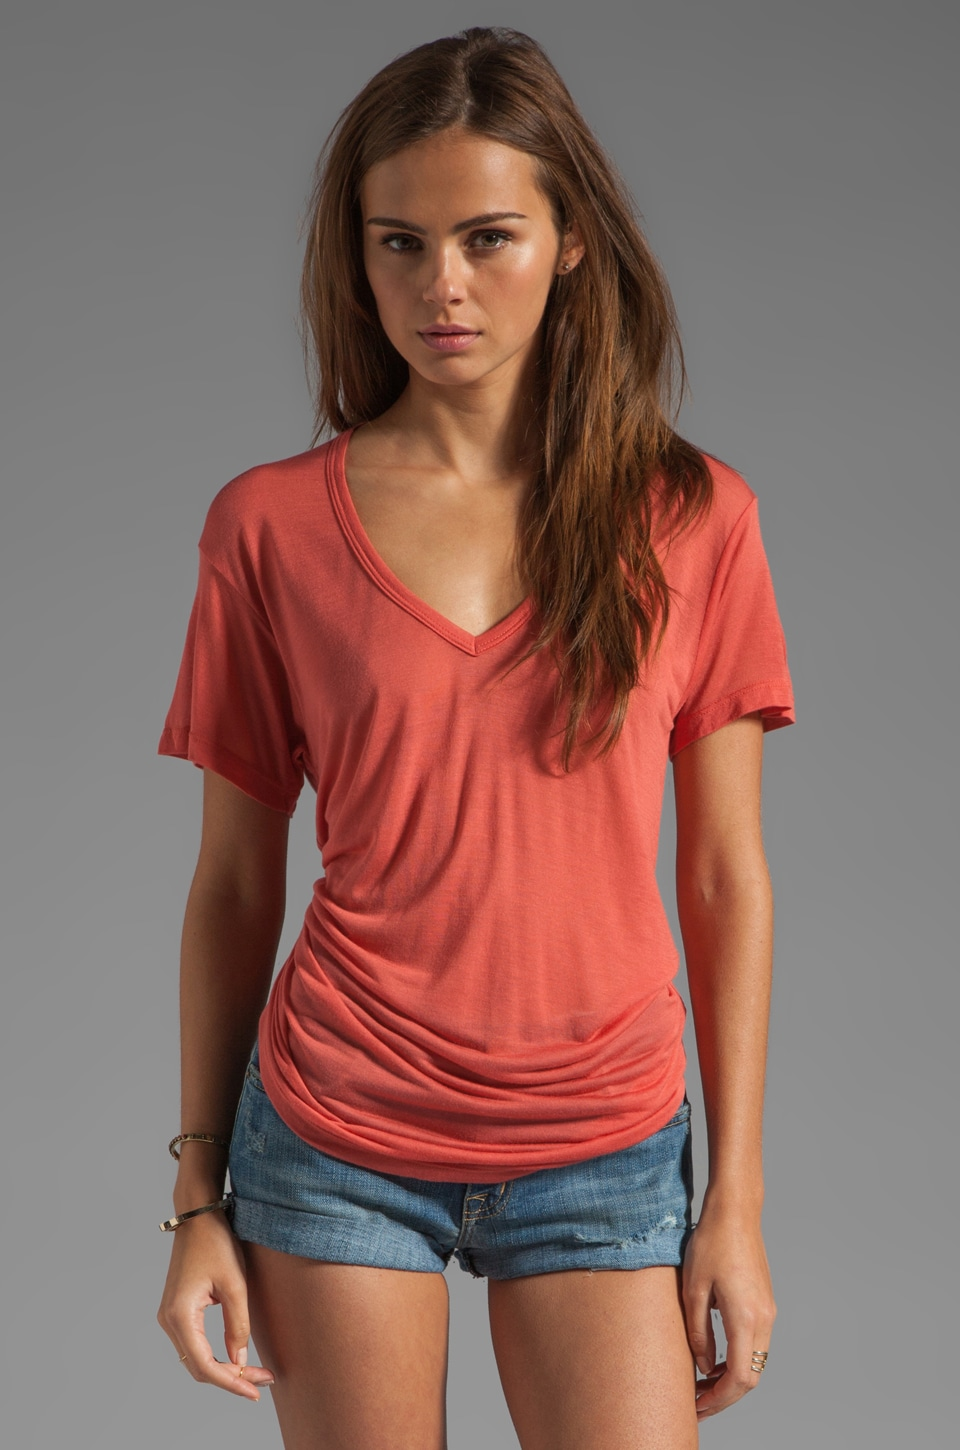 Kain Sheer Jersey Classic V Neck in Saffron